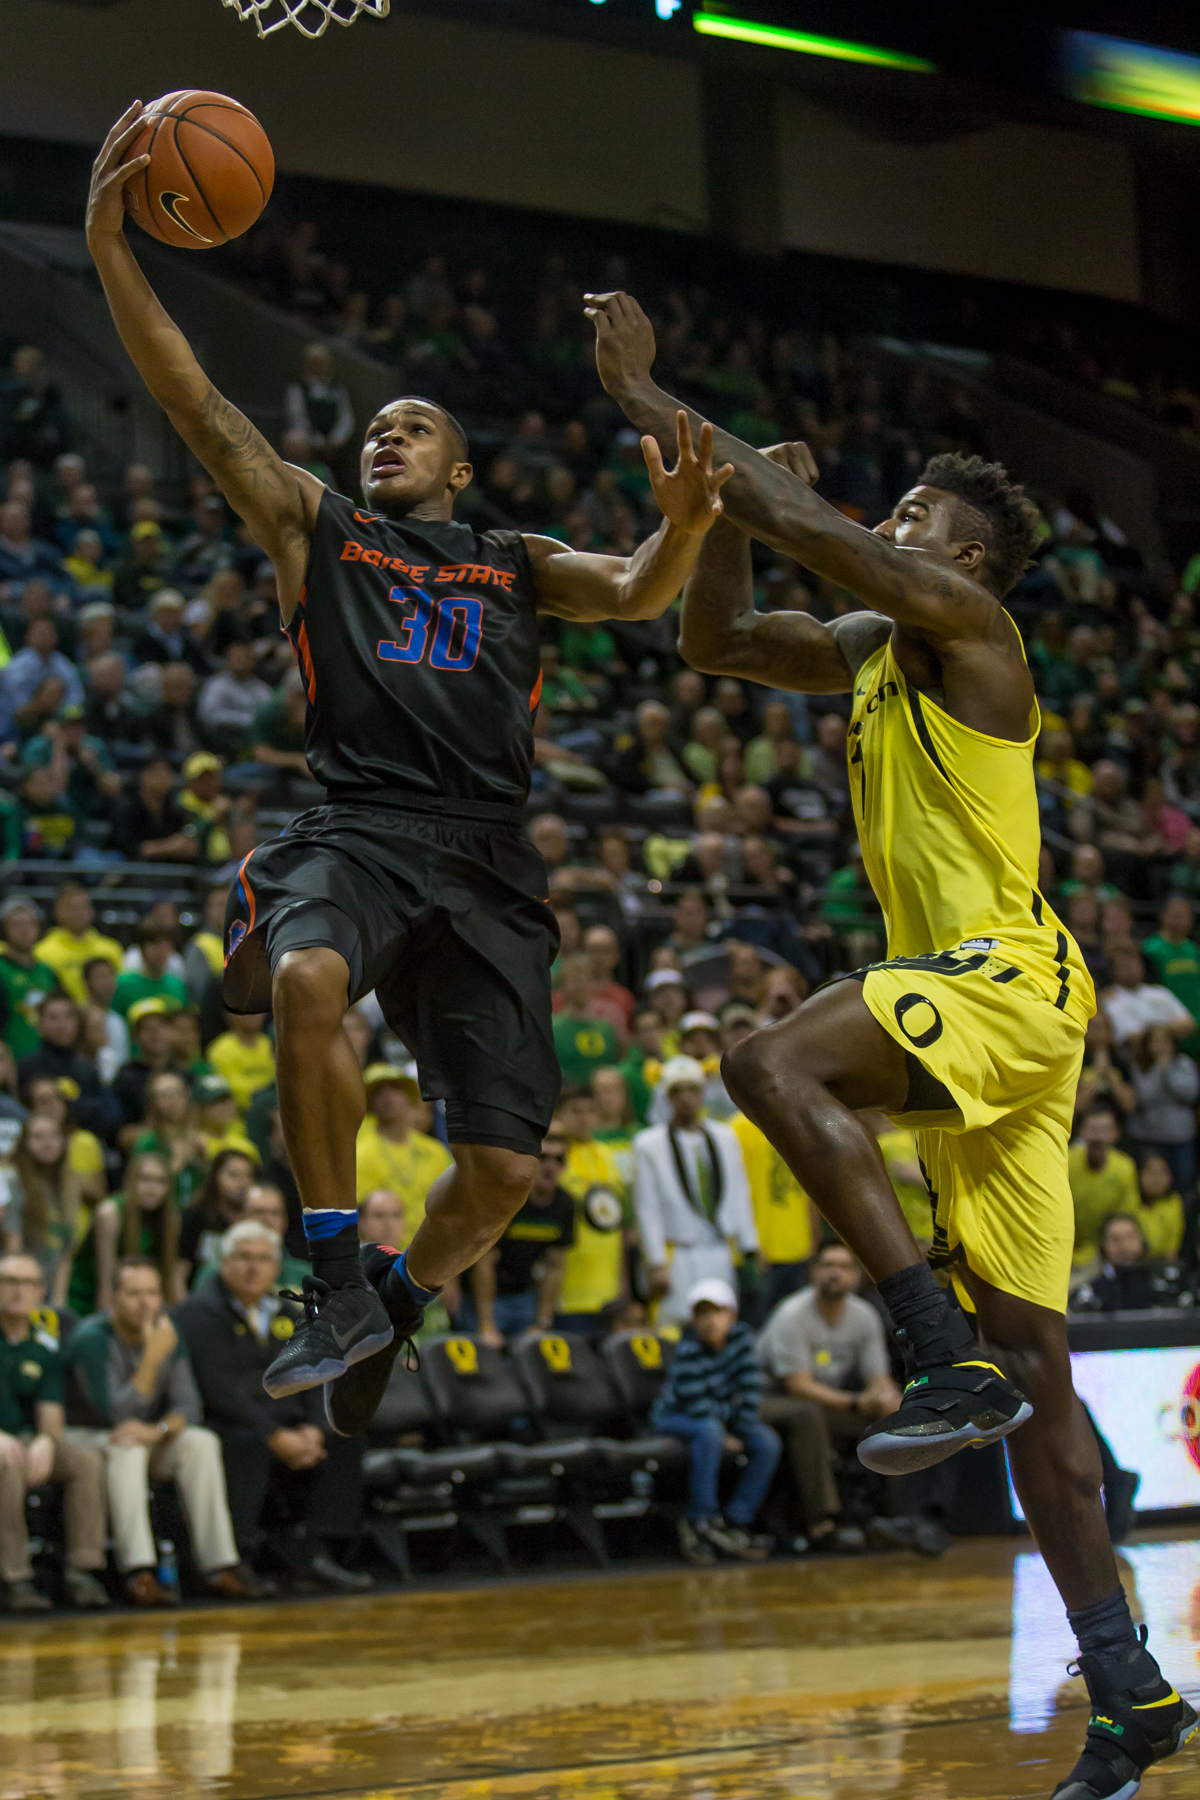 Boise State guard Paris Austin (#30) jumps past Oregon forward Jordan Bell (#1) on his way to the rim. After trailing for most of the game, the Oregon Ducks defeated the Boise State Broncos 68-63. Photo by Dillon Vibes